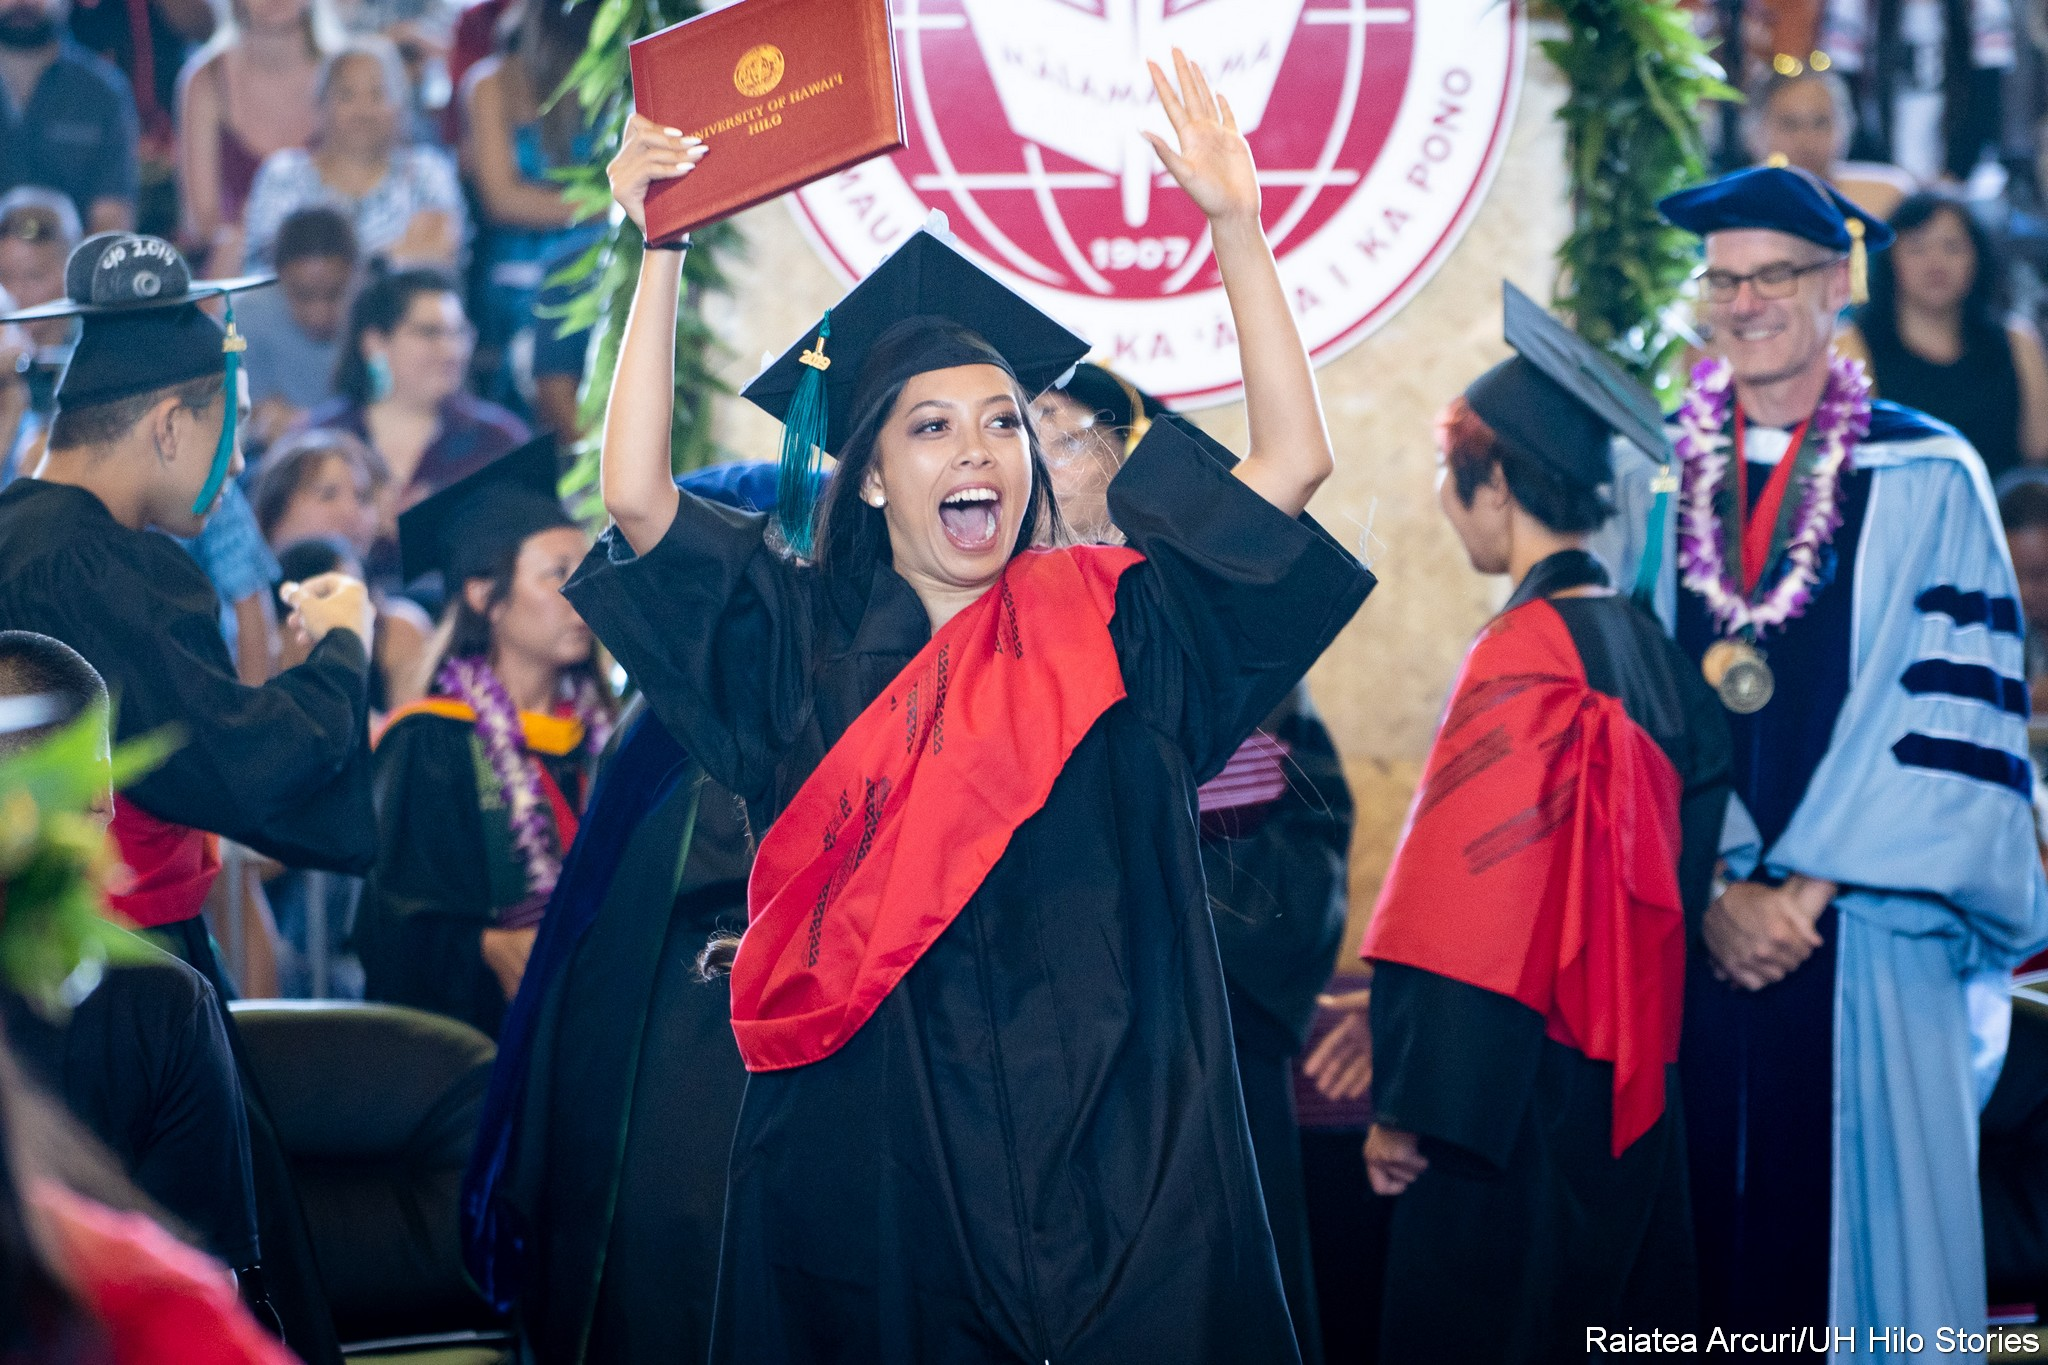 Female graduate with big smile and hands overhead leaving dais with diploma.